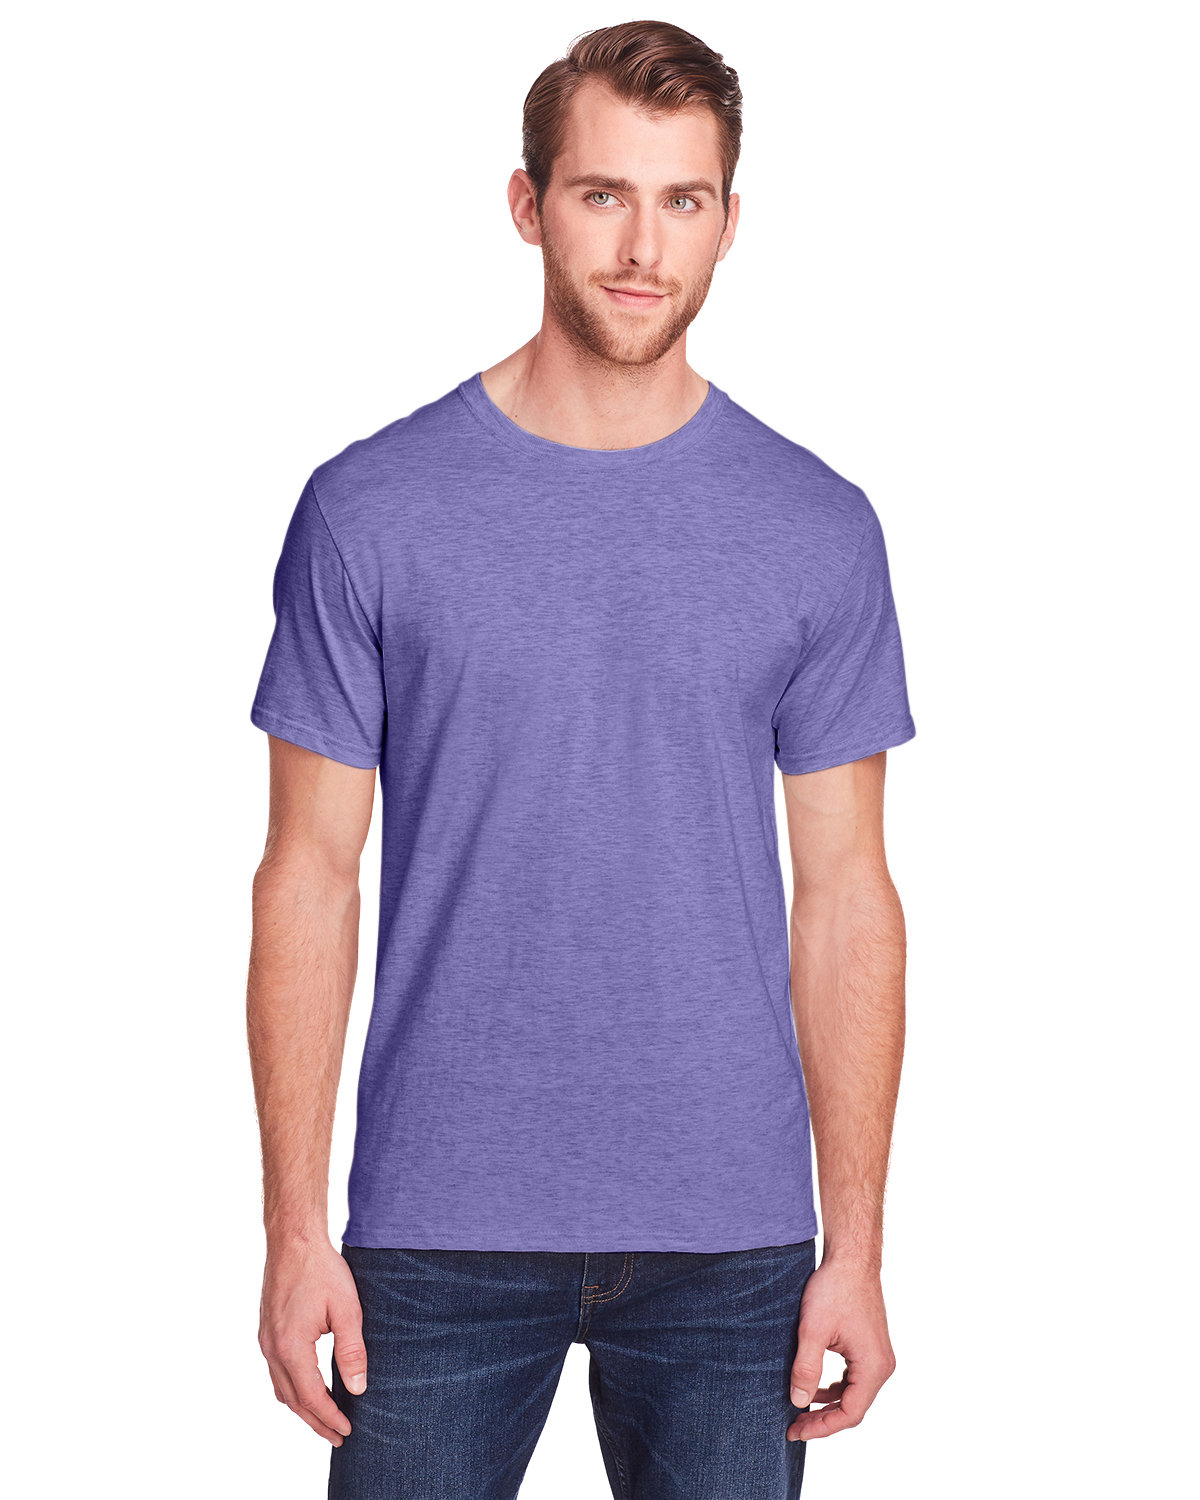 Fruit of the Loom Adult ICONIC™ T-Shirt RETRO HTH PURPLE